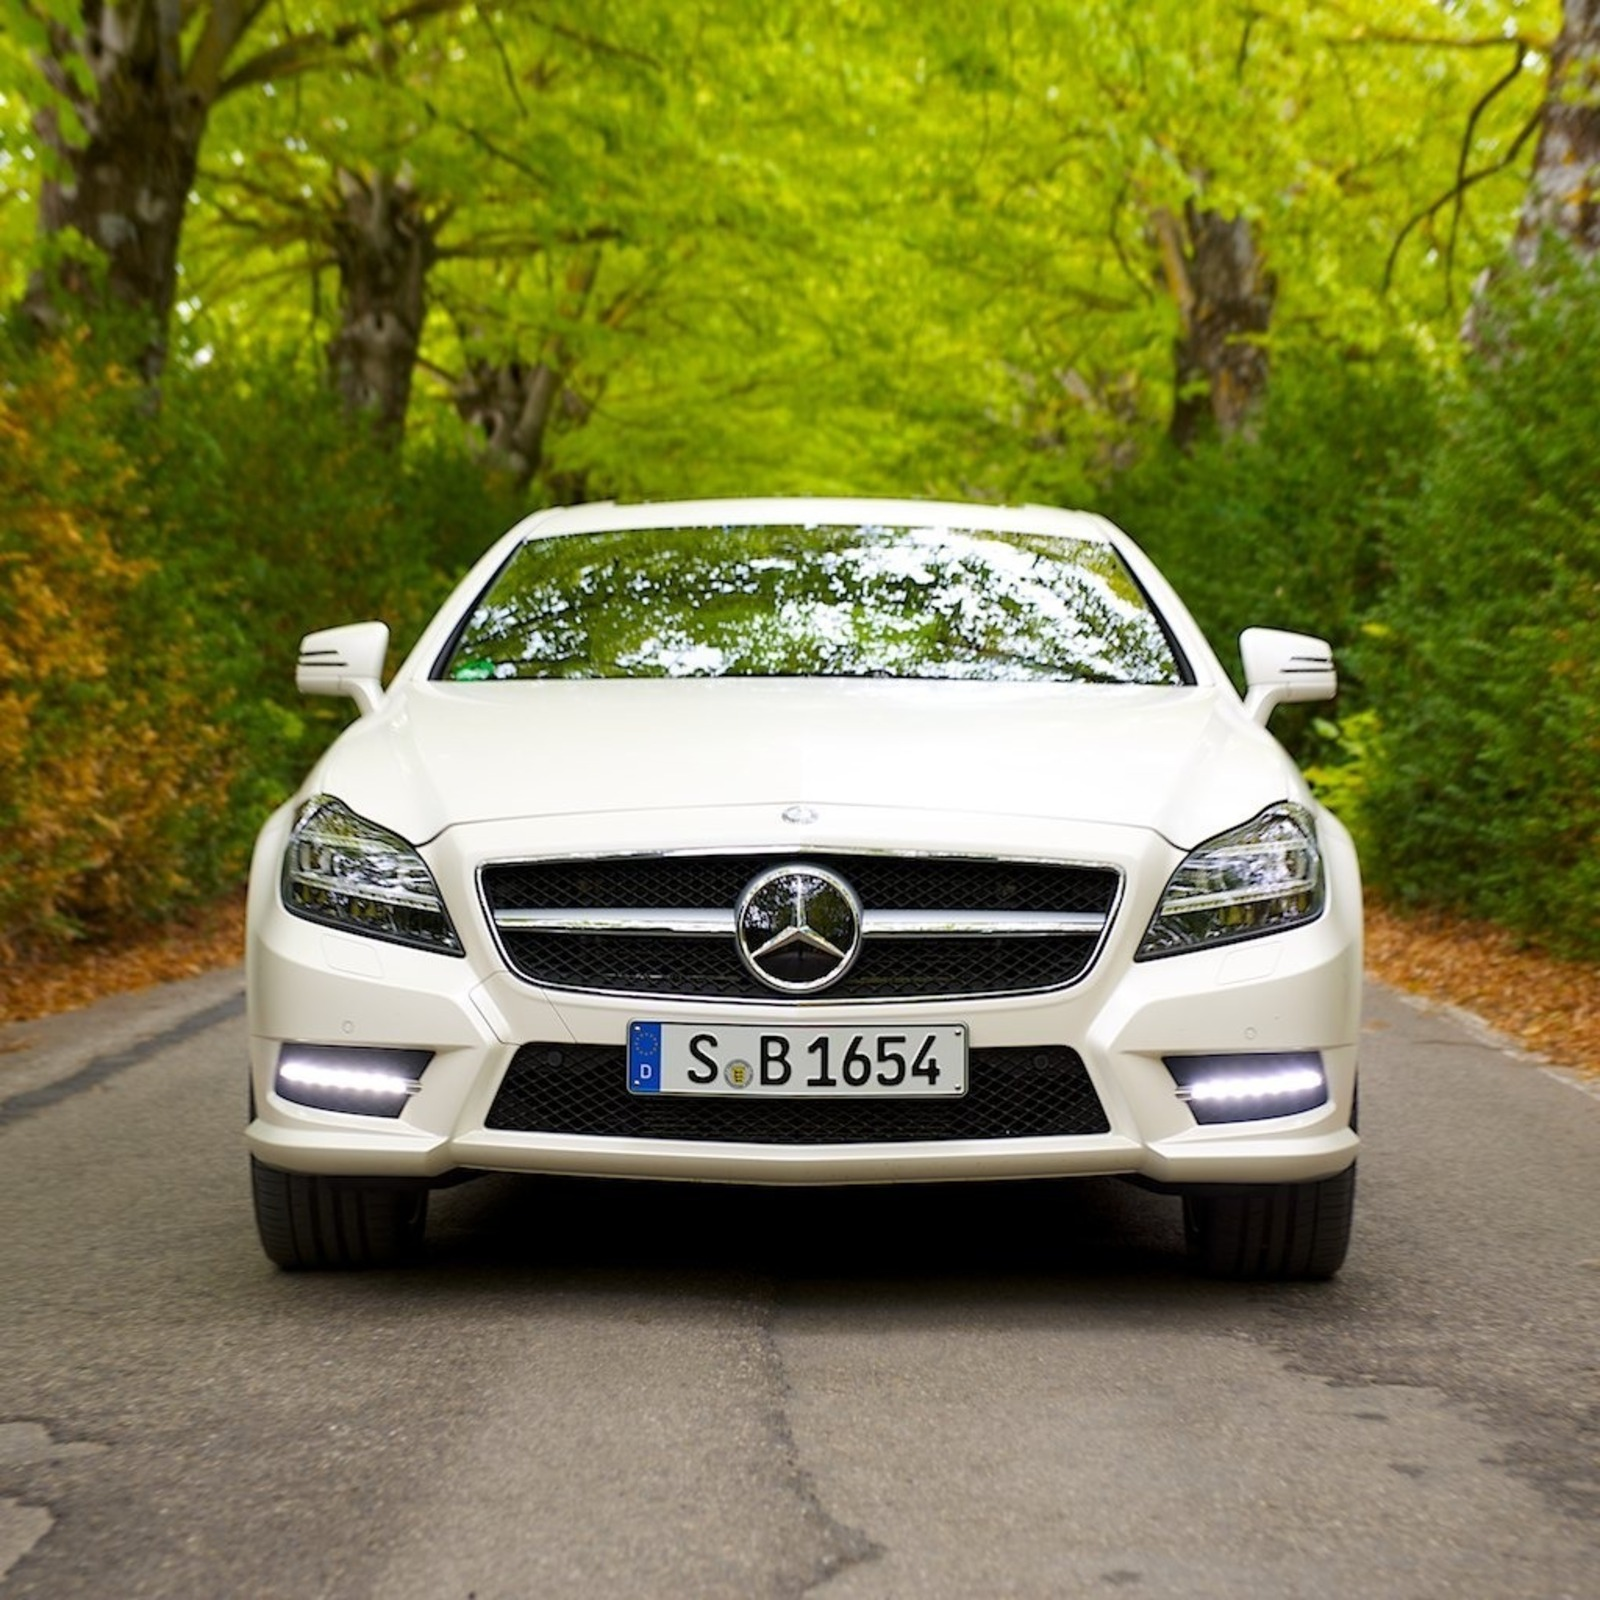 Amg Engine Range: Test Drive: CLS Shooting Brake